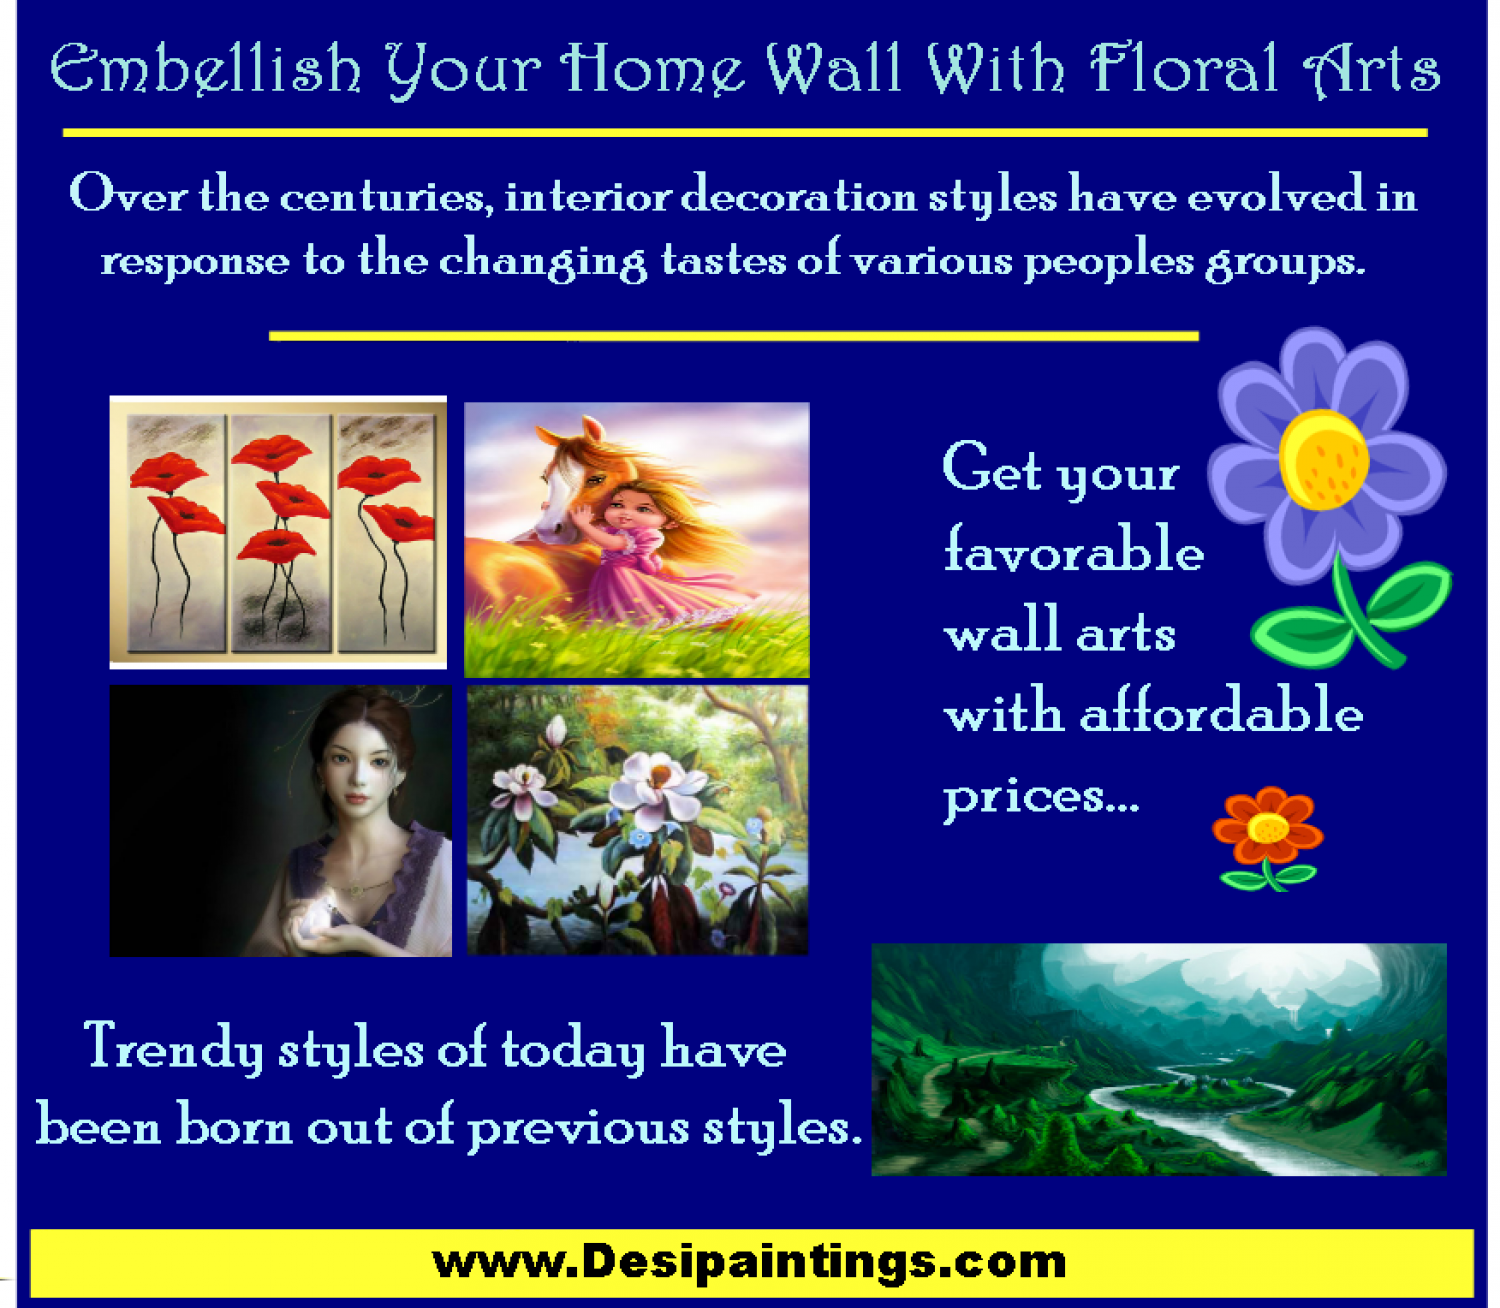 Embellish Your Home Wall with Floral Arts Infographic